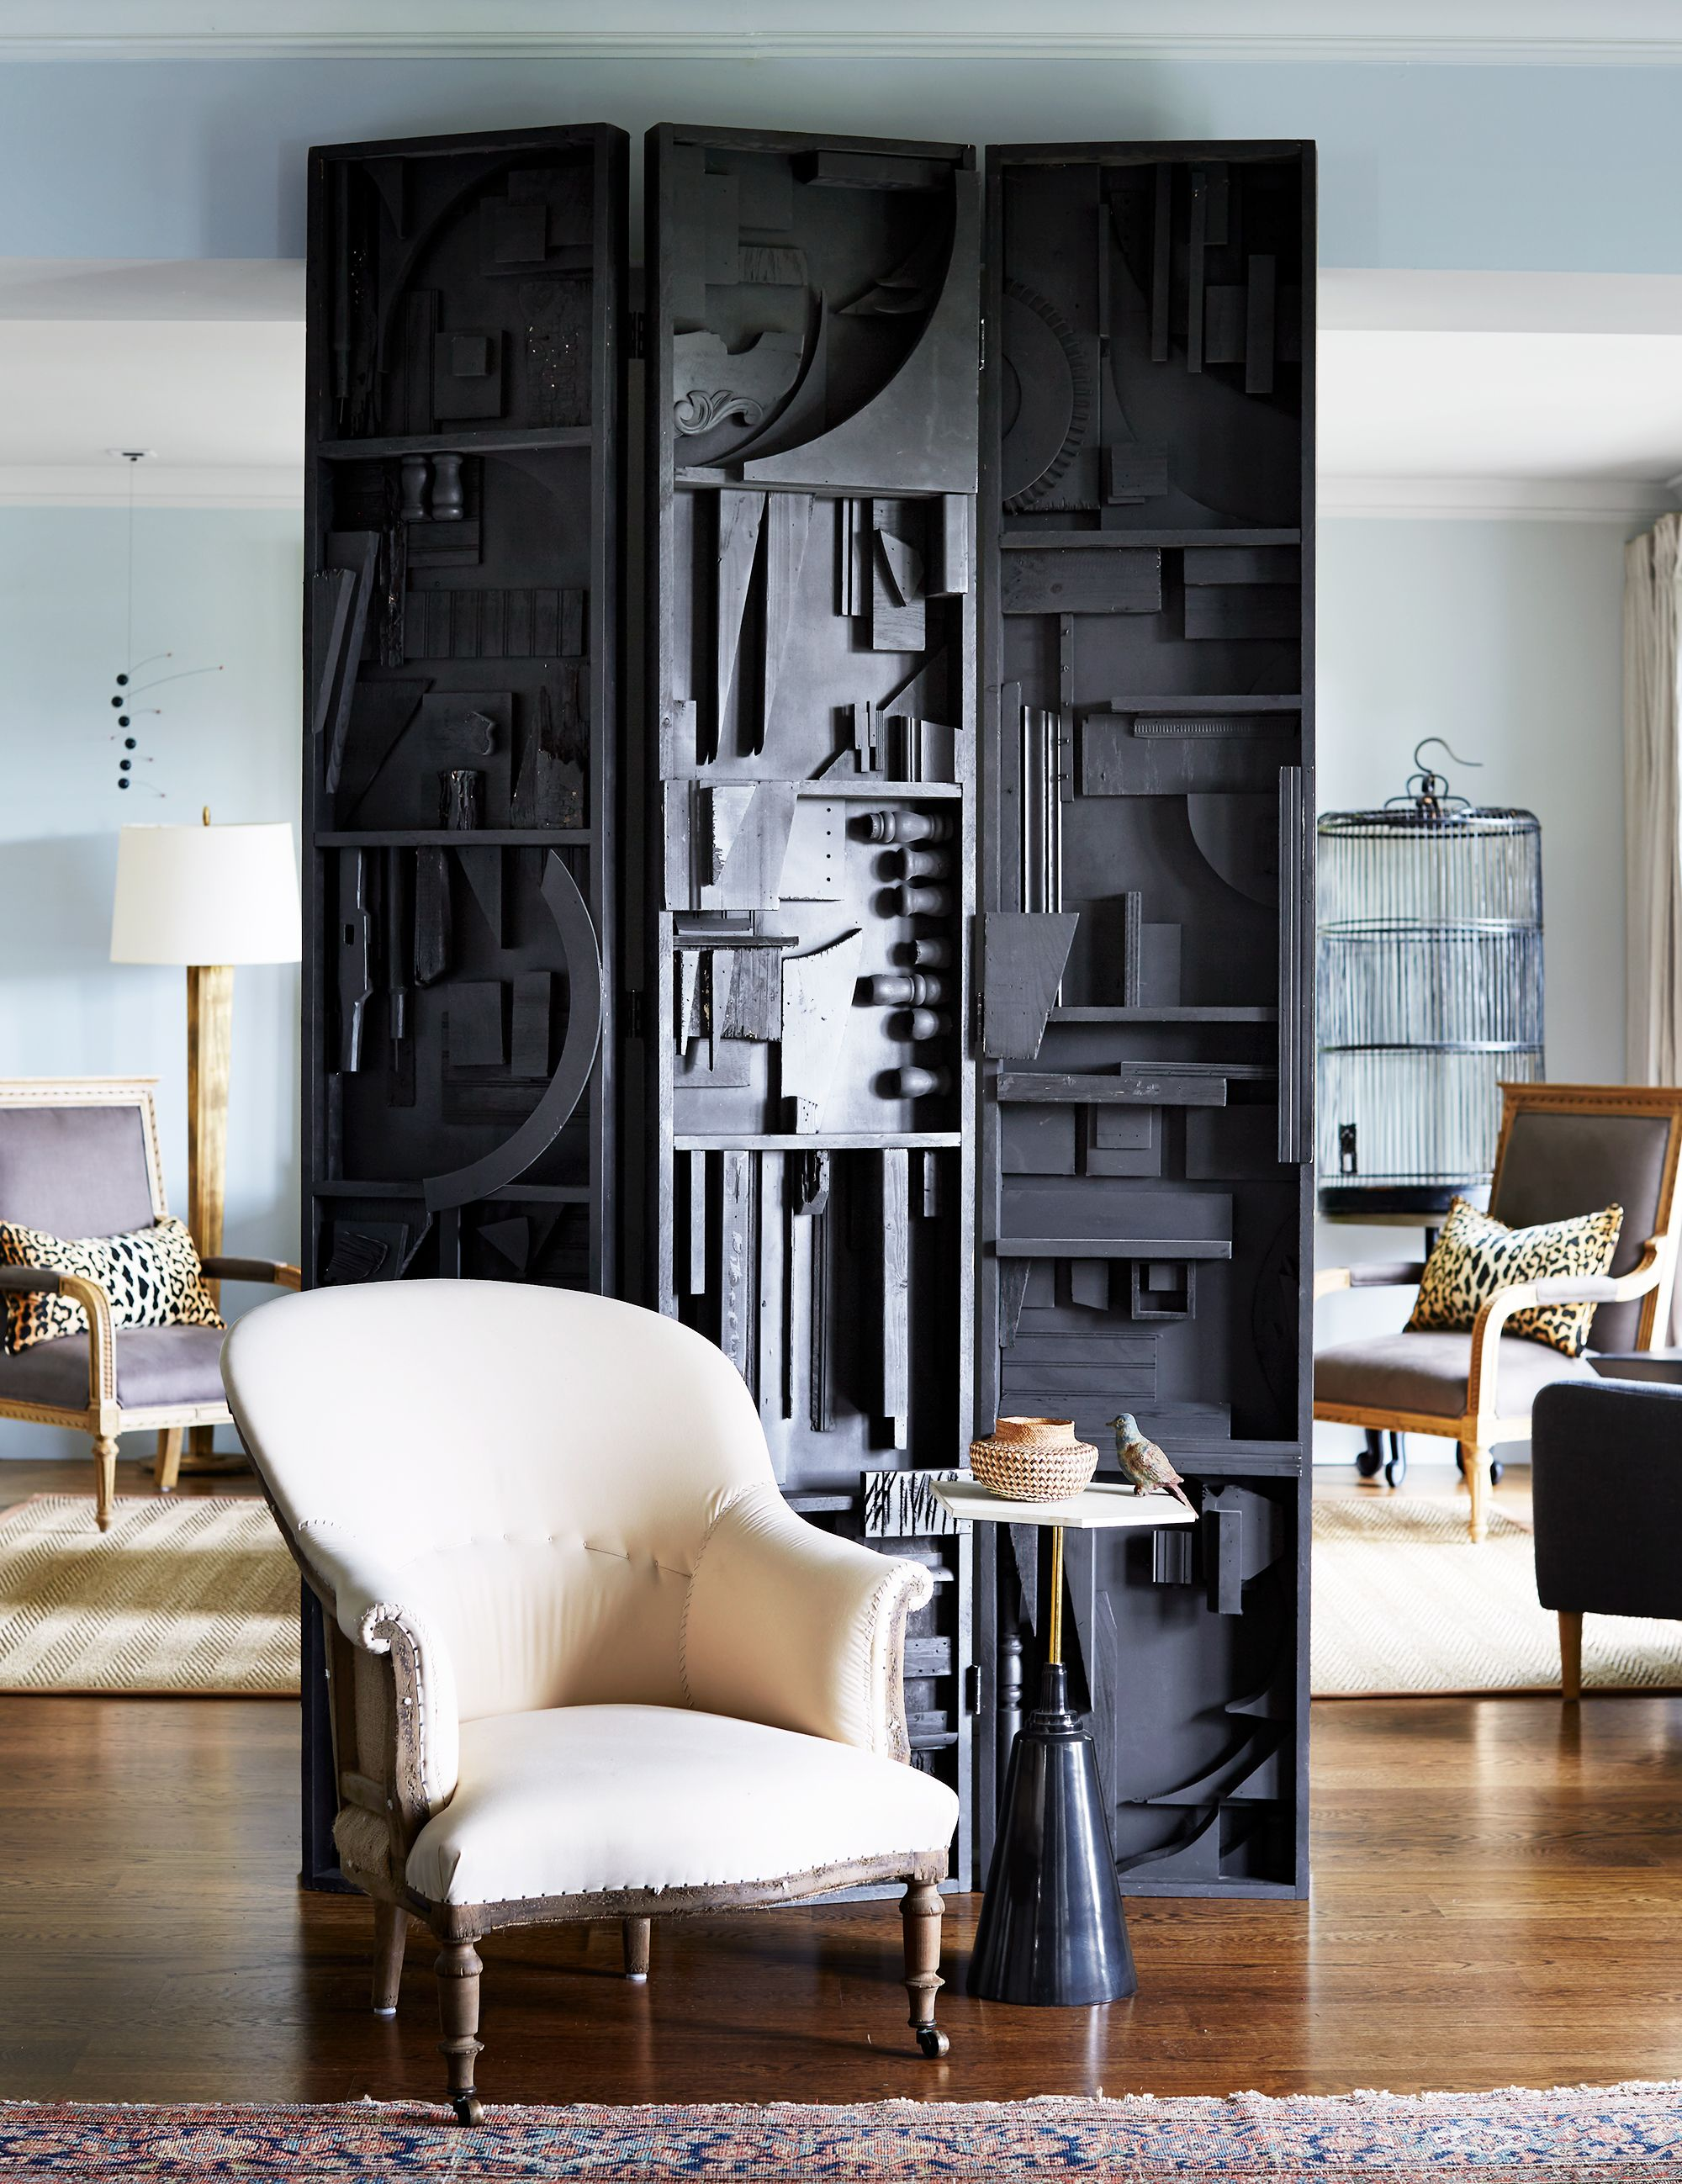 20 Clever Room Divider Ideas , Folding Screen and Wall